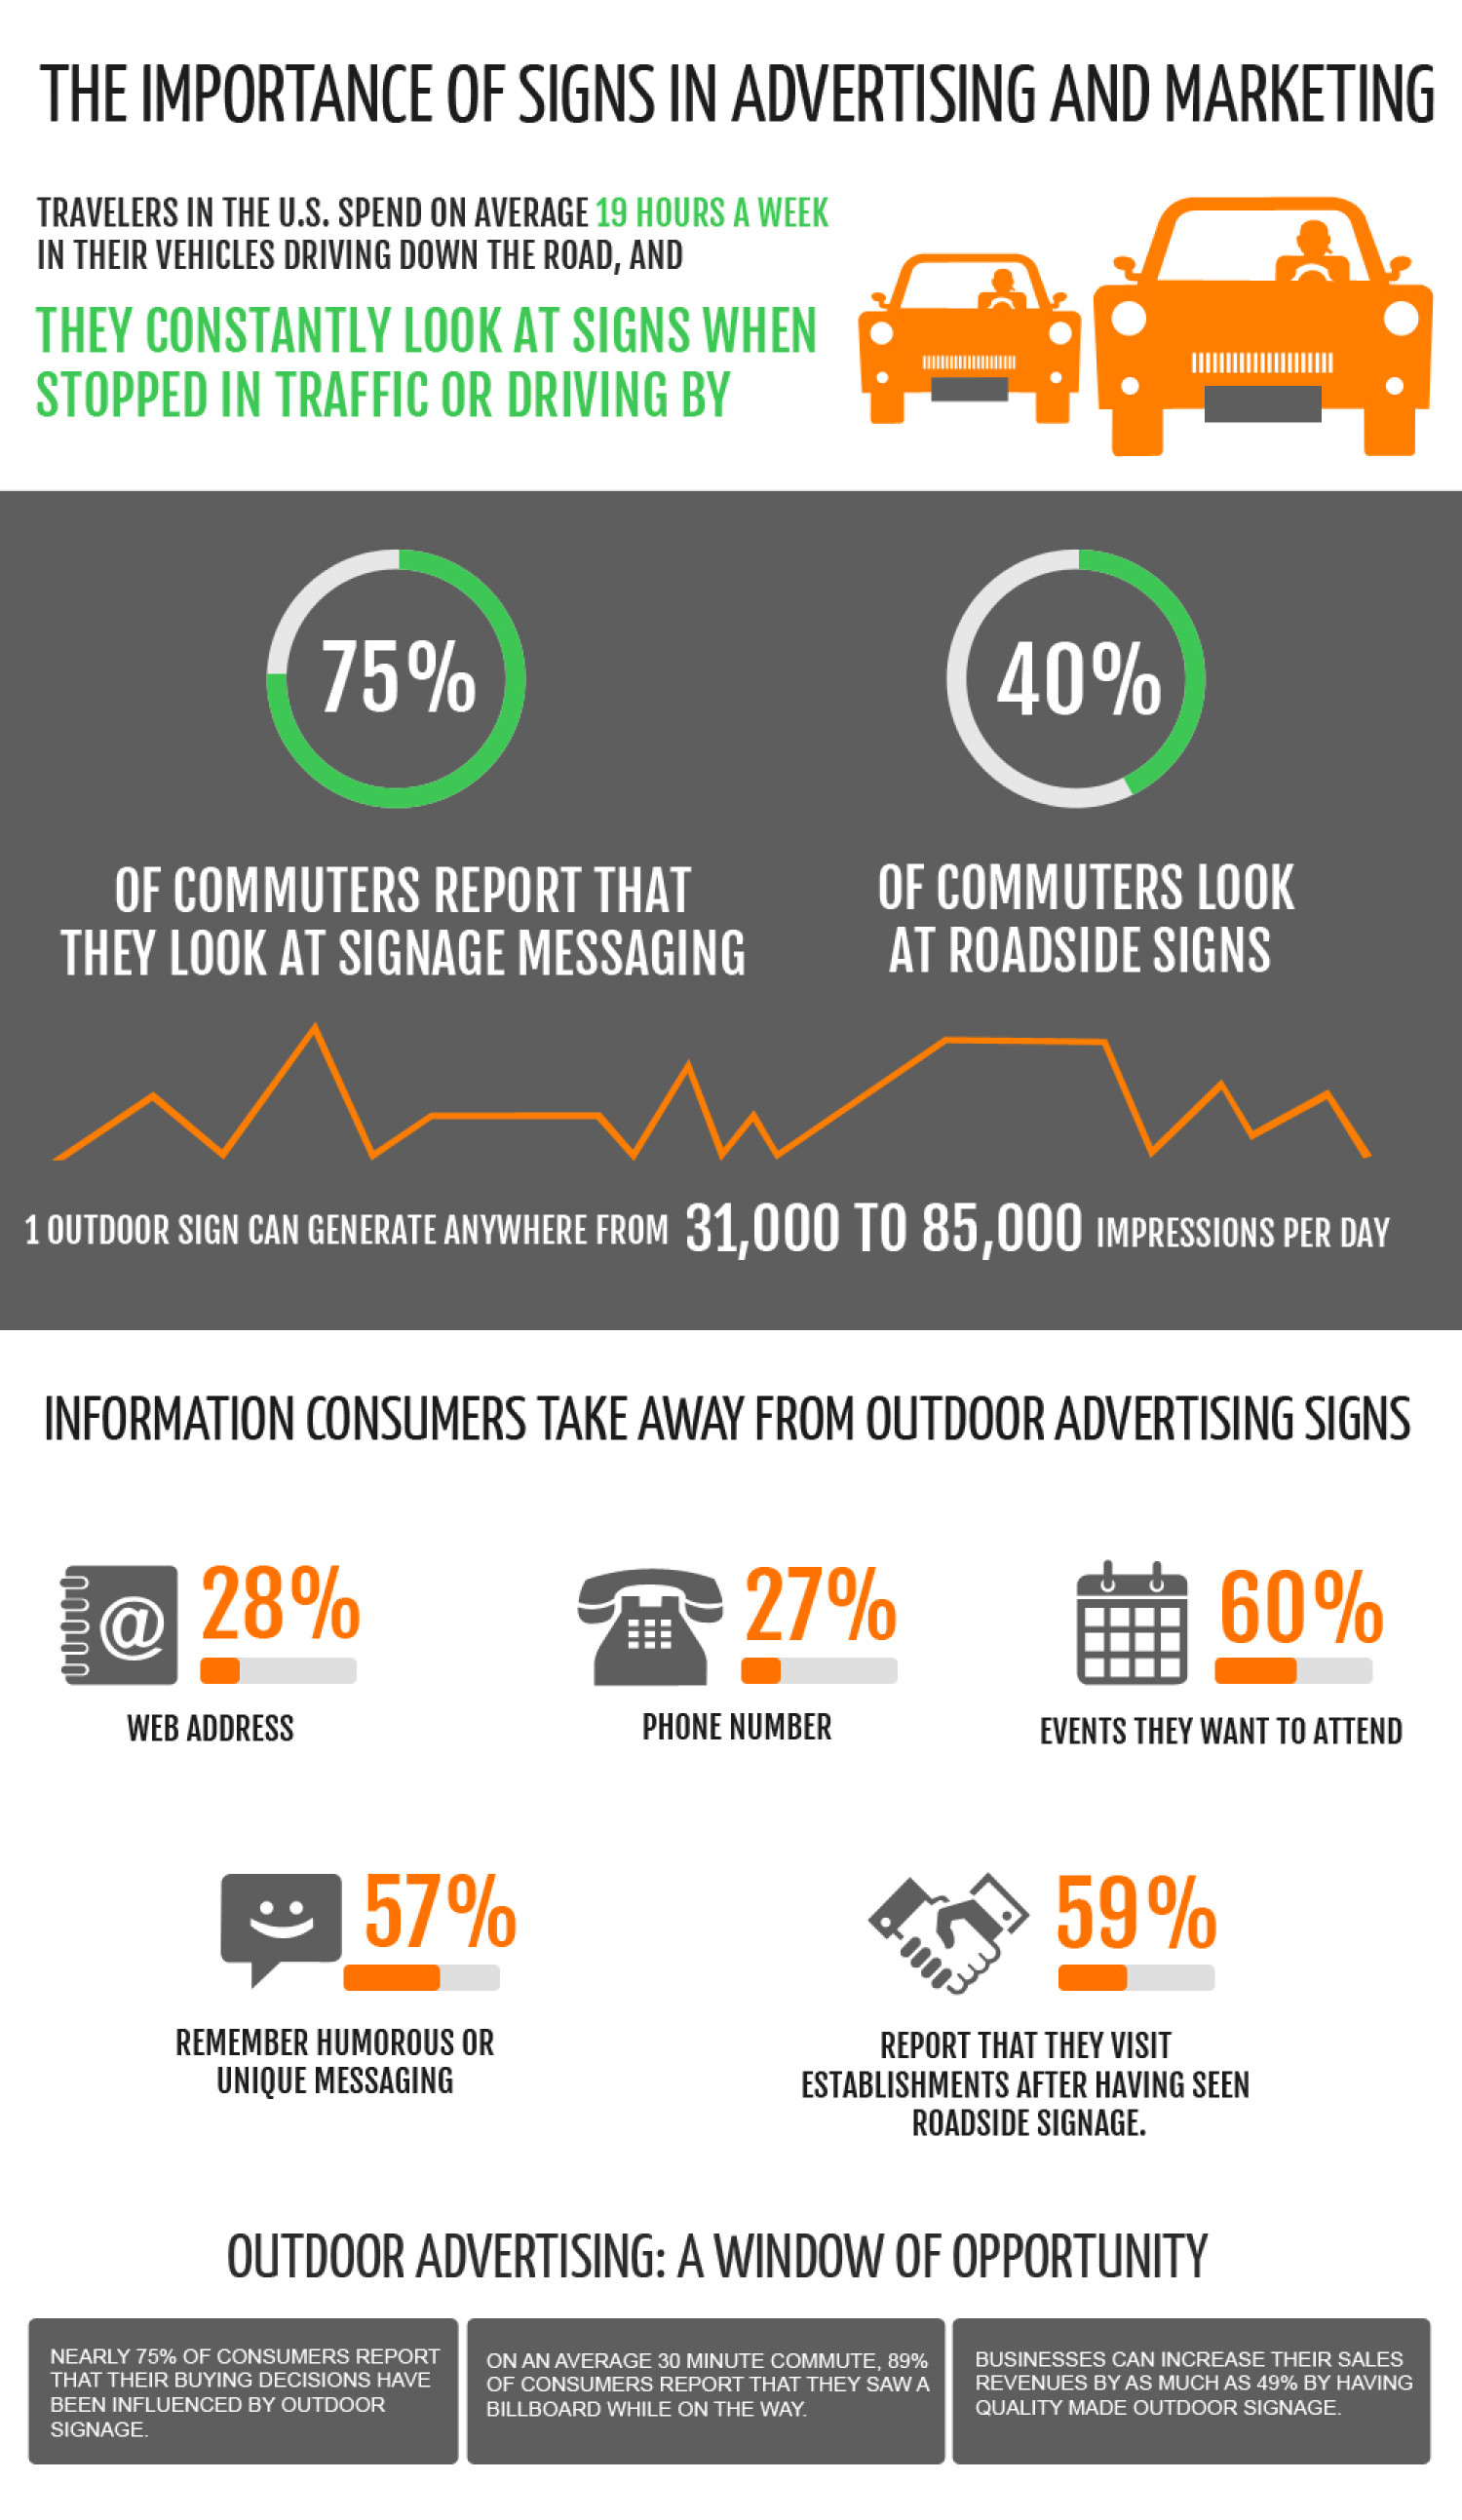 The Importance of Signs in Advertising and Marketing Infographic